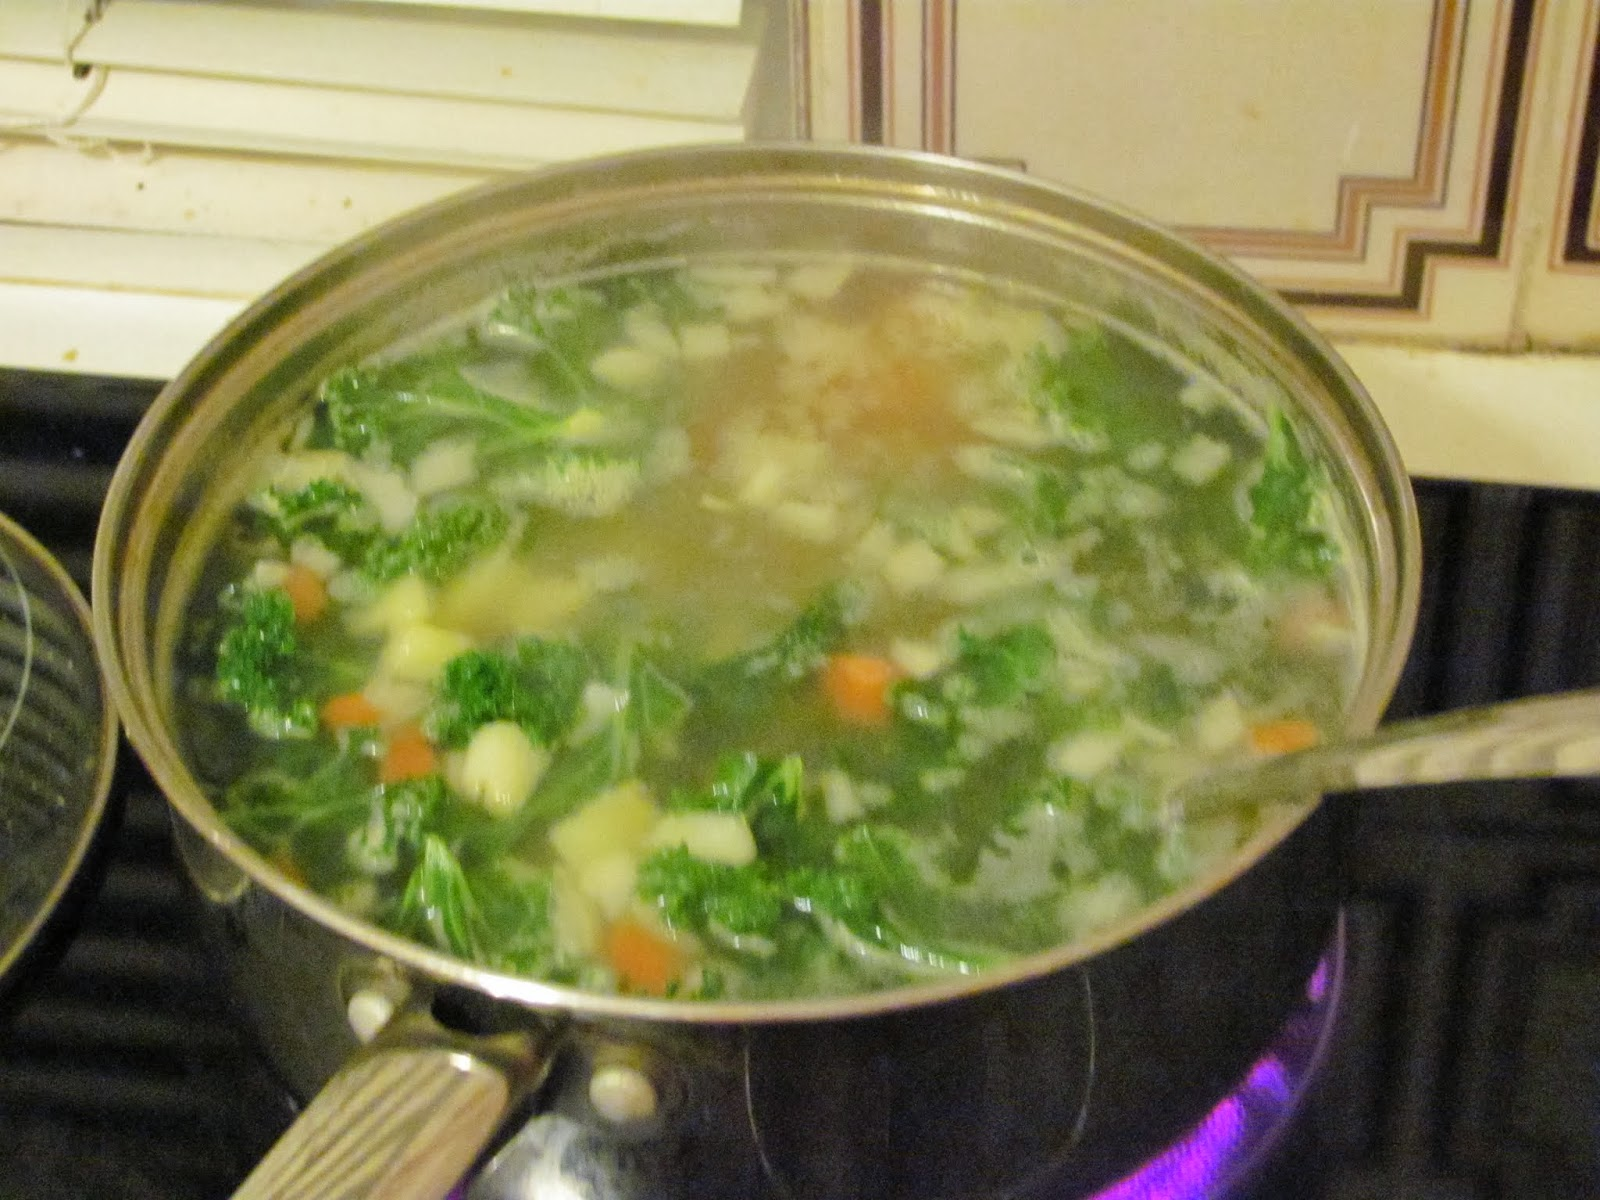 Cooking down everything in the soup